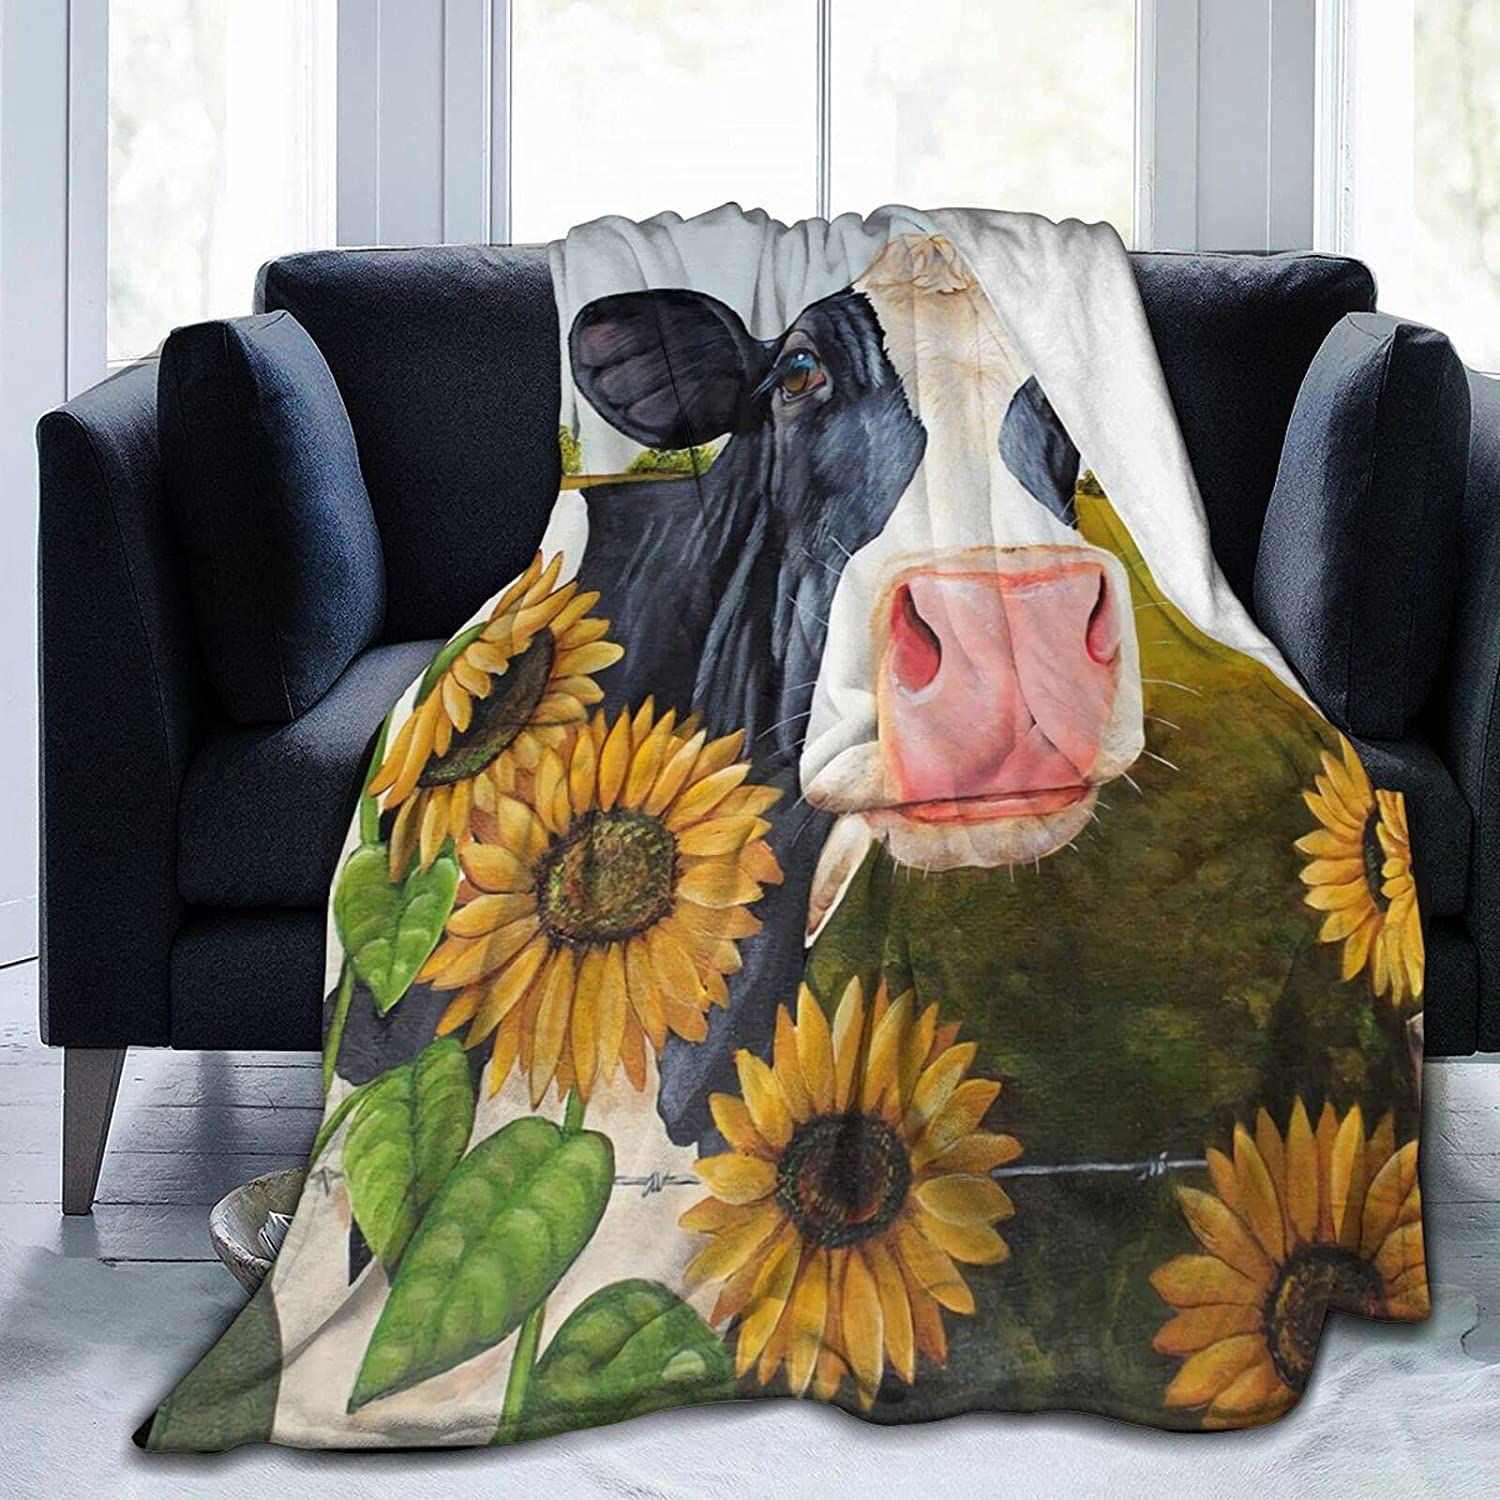 ASYOURWISH Virginia Beach Mall Sunflower Cow Throw Ranking TOP7 for Couch Blanket